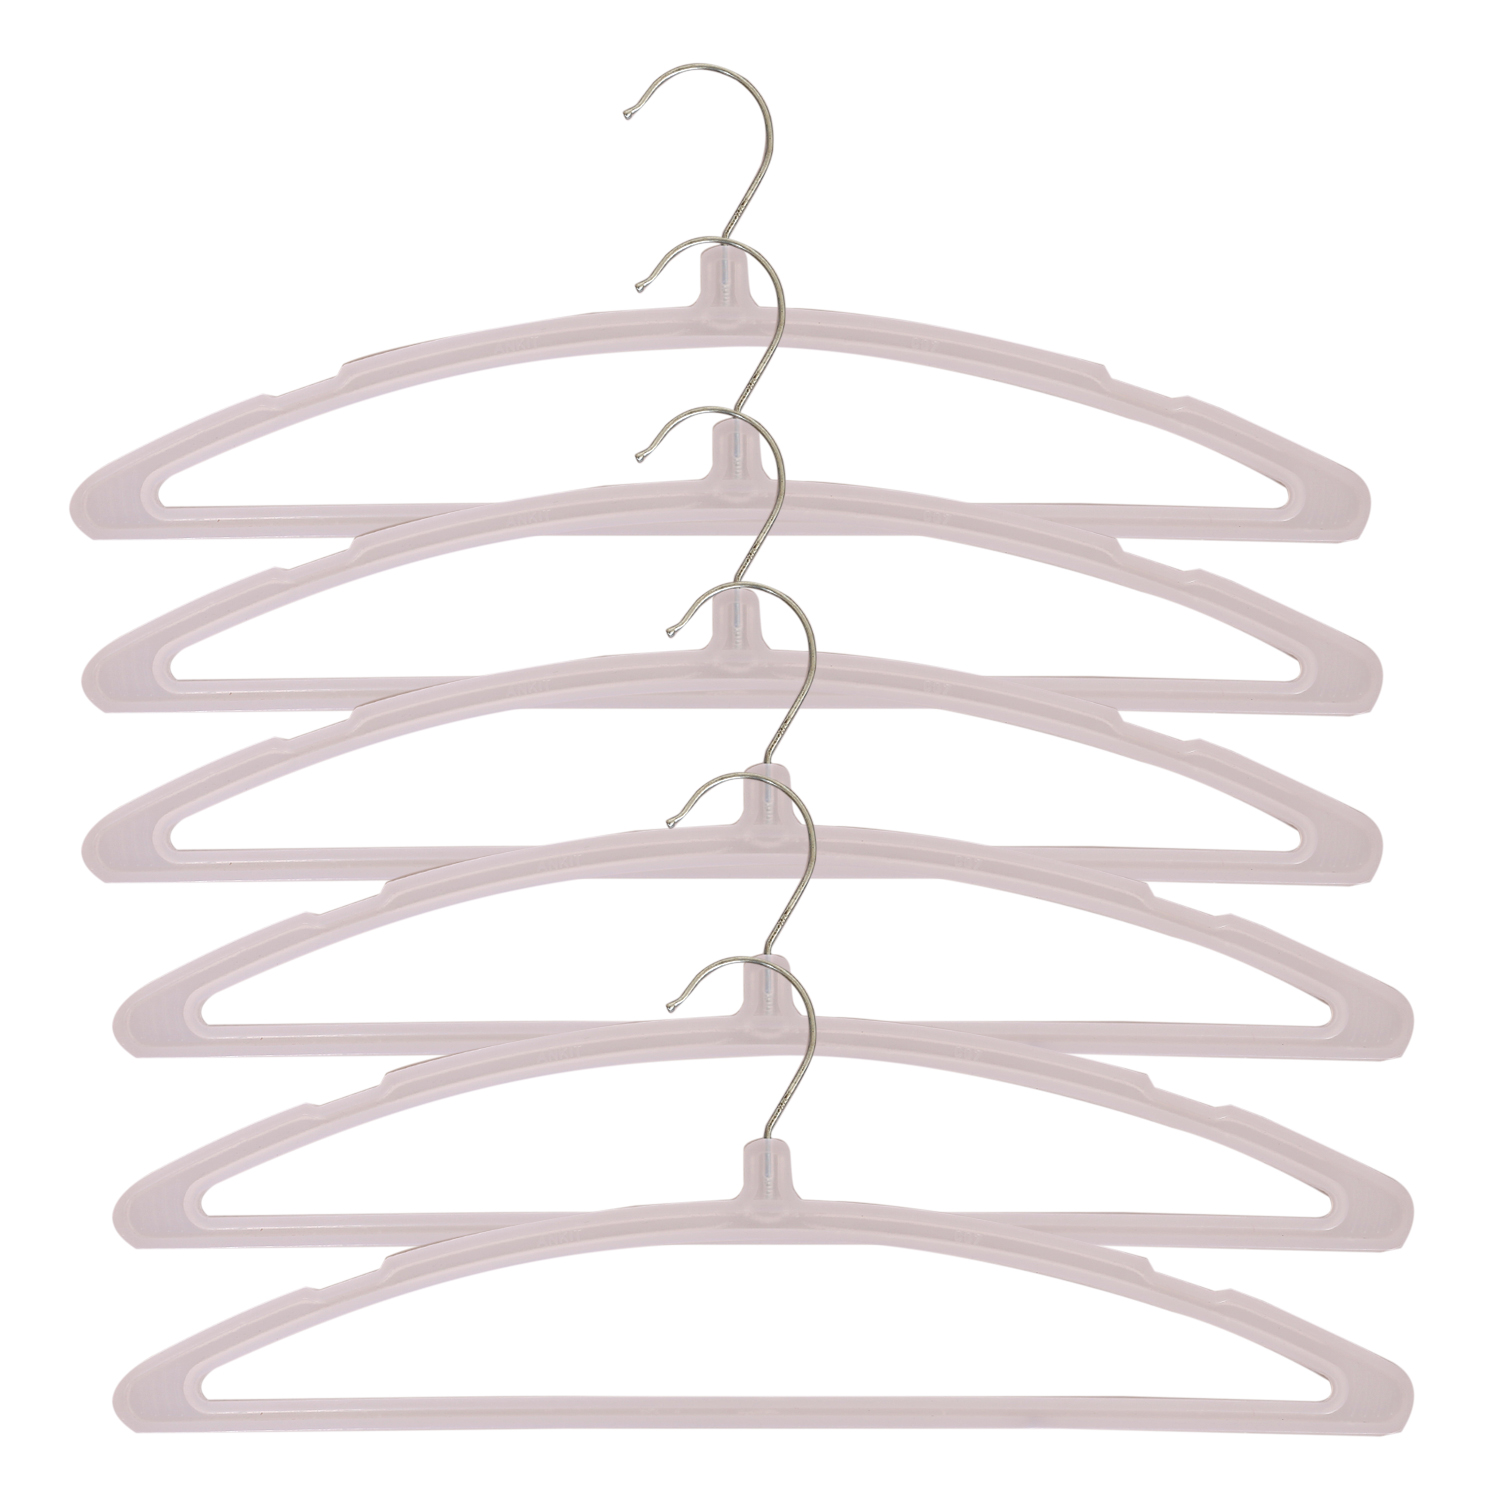 Kuber Industries Plastic Hanger For Suit,Cloth Set of 12 Pcs,White